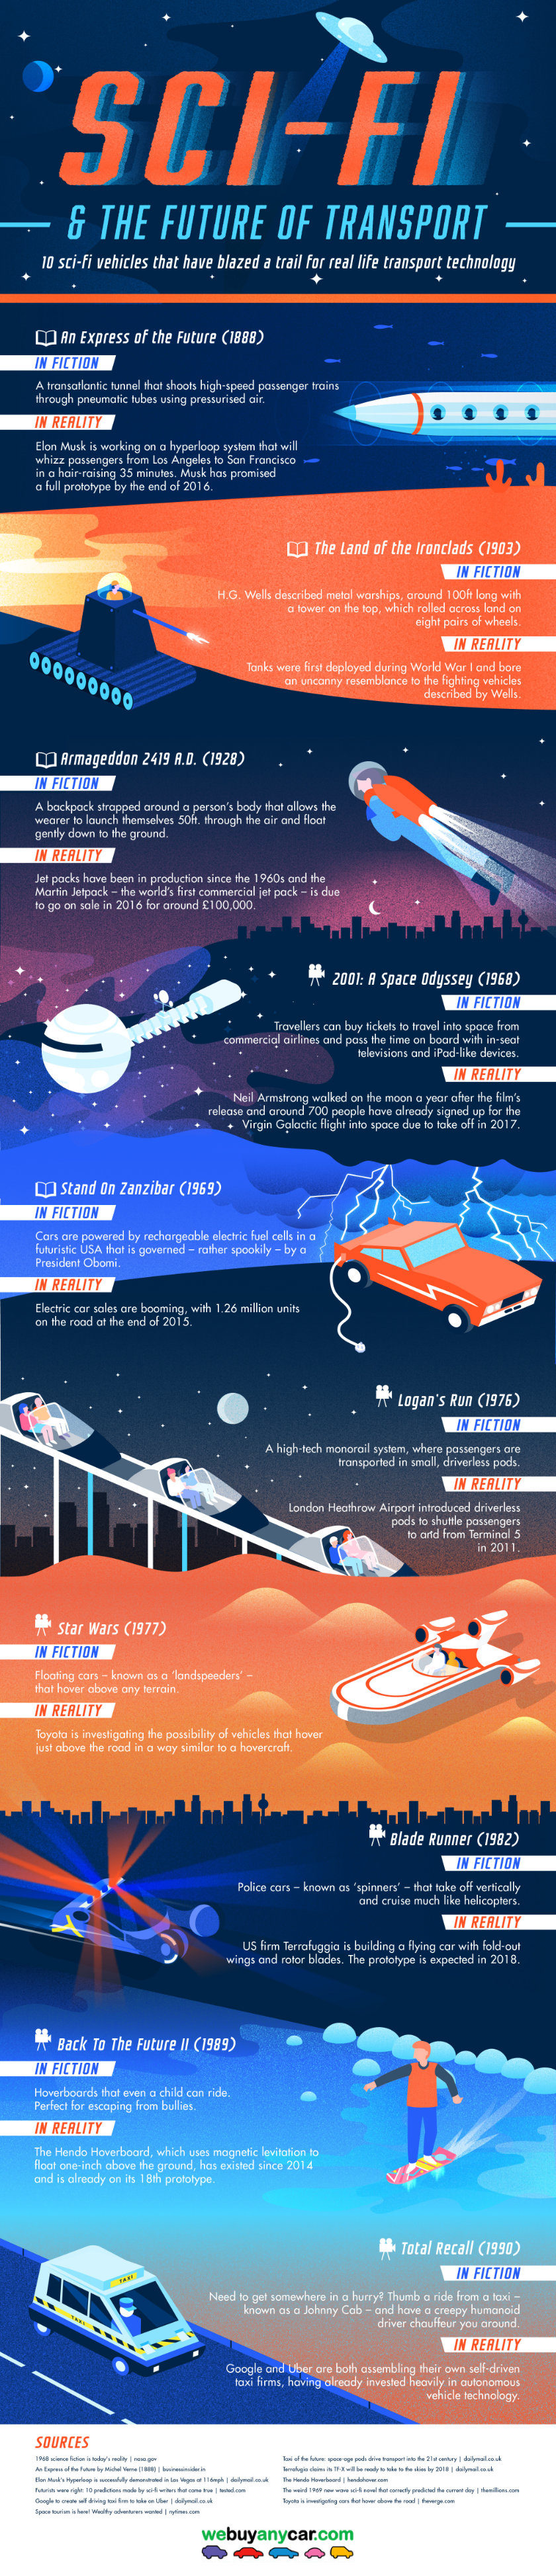 10 vehicles that were predicted by sci-fi literature #infographic